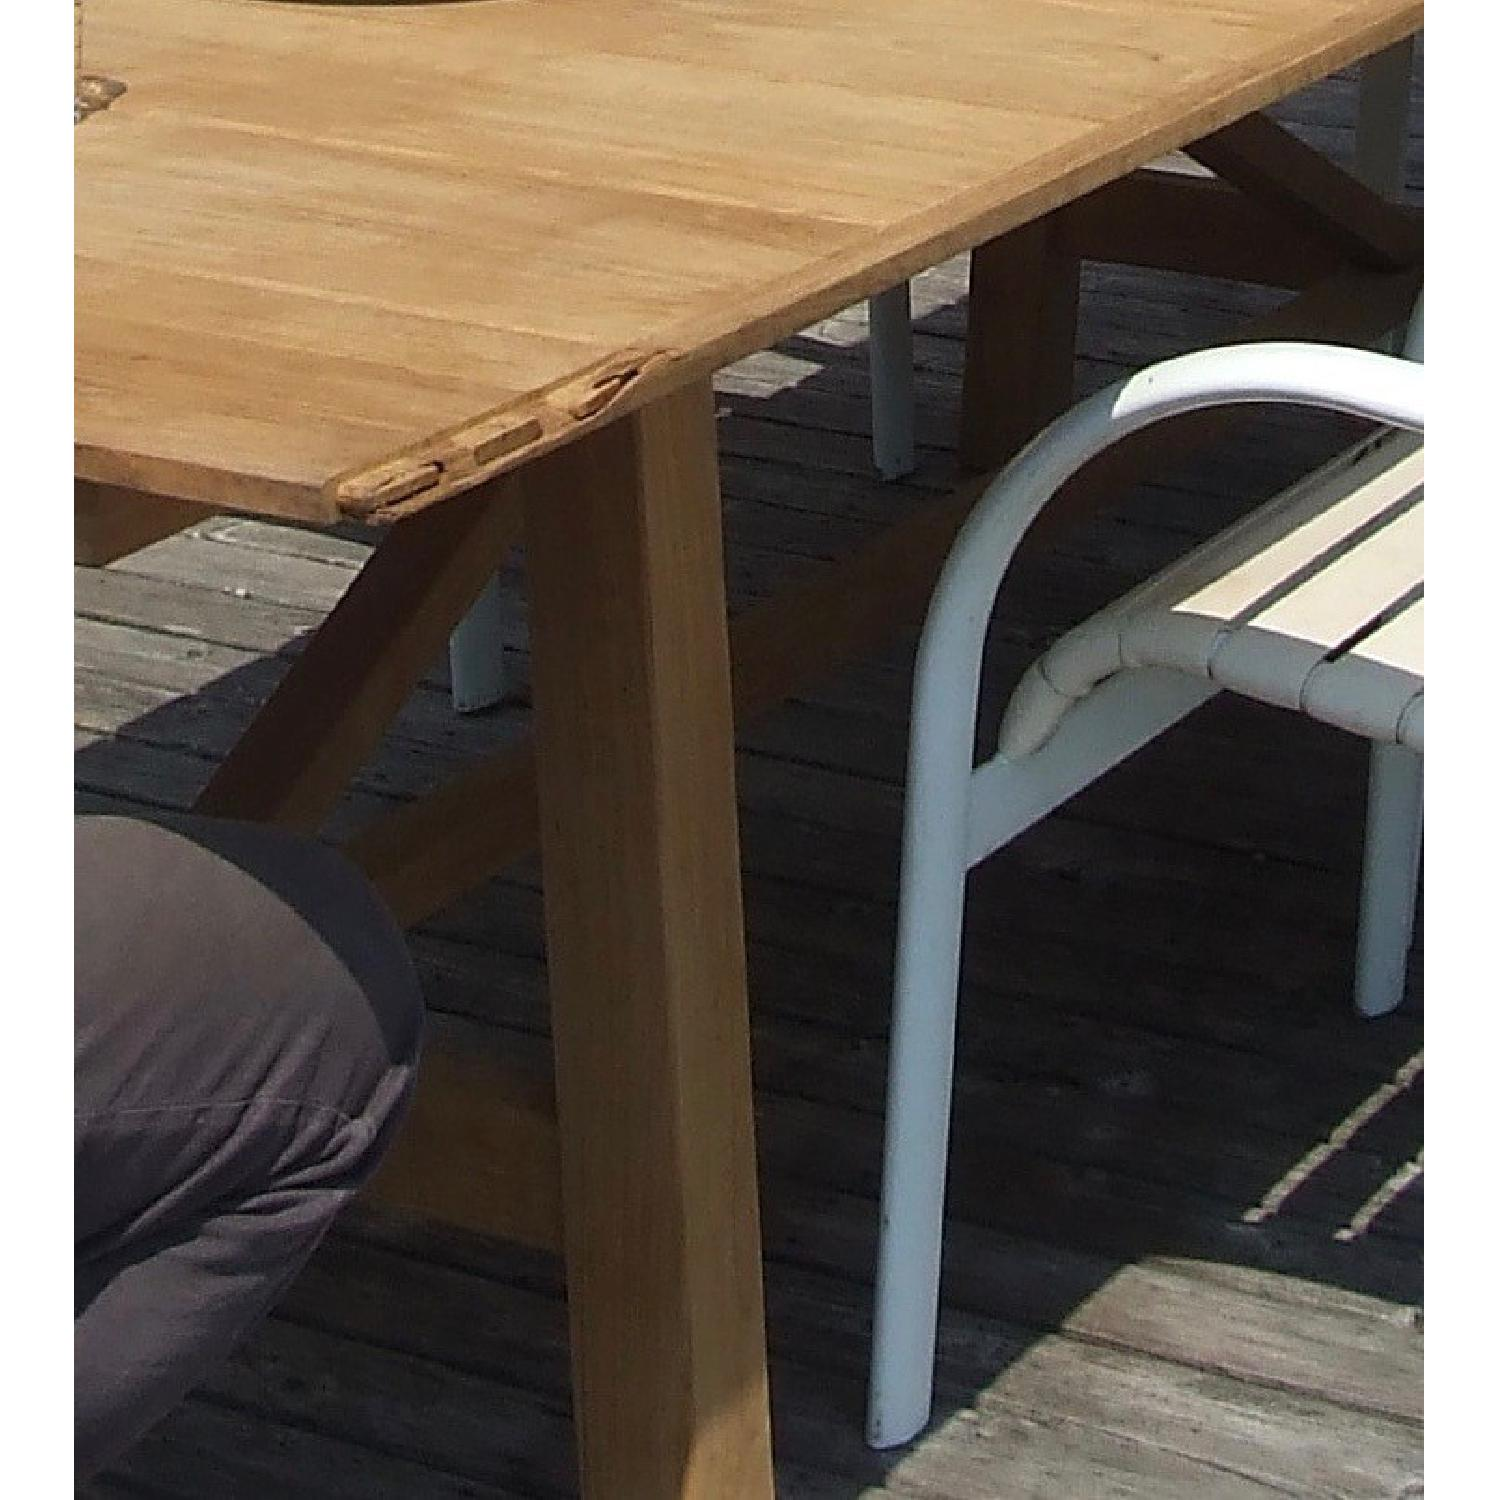 Design Within Reach Alden Collection Teak Outdoor Dining Table - image-4